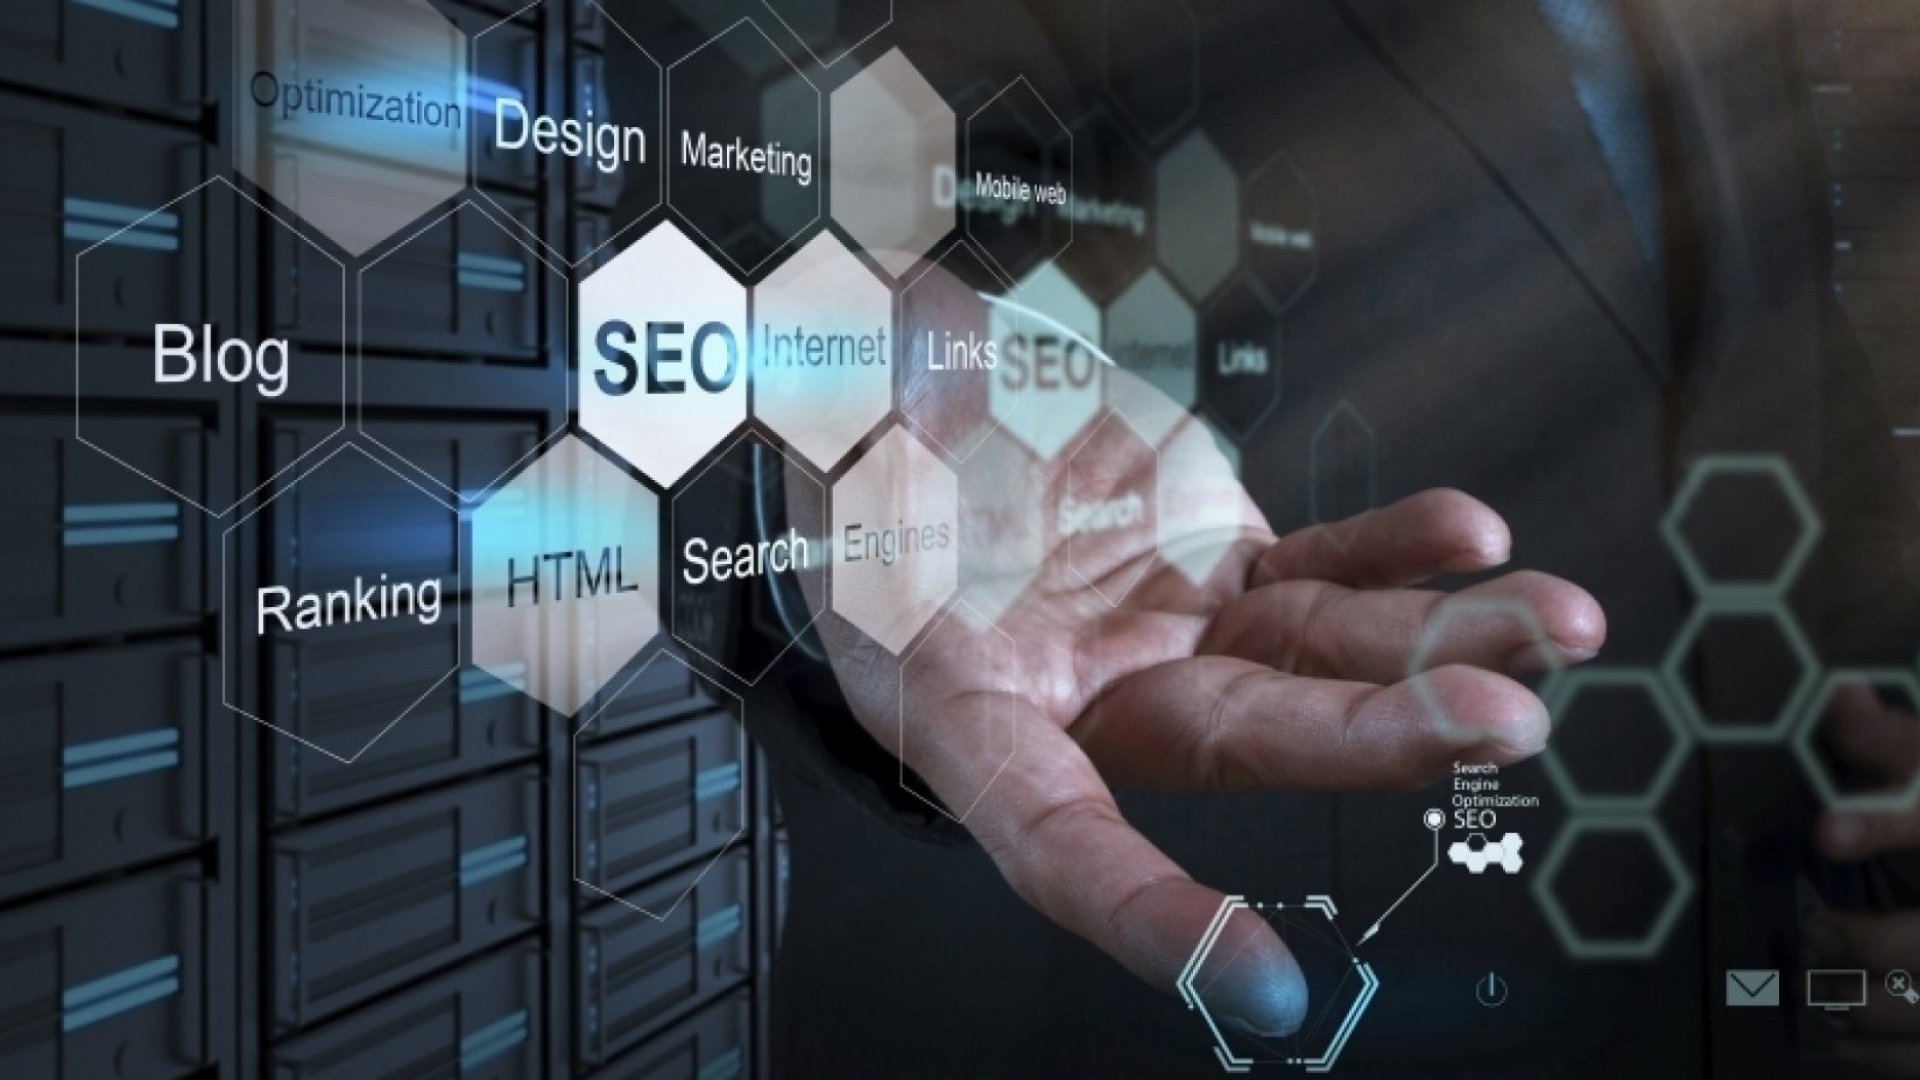 Is Your SEO Strategy Future-Proof? Here are 5 Ways to Tell